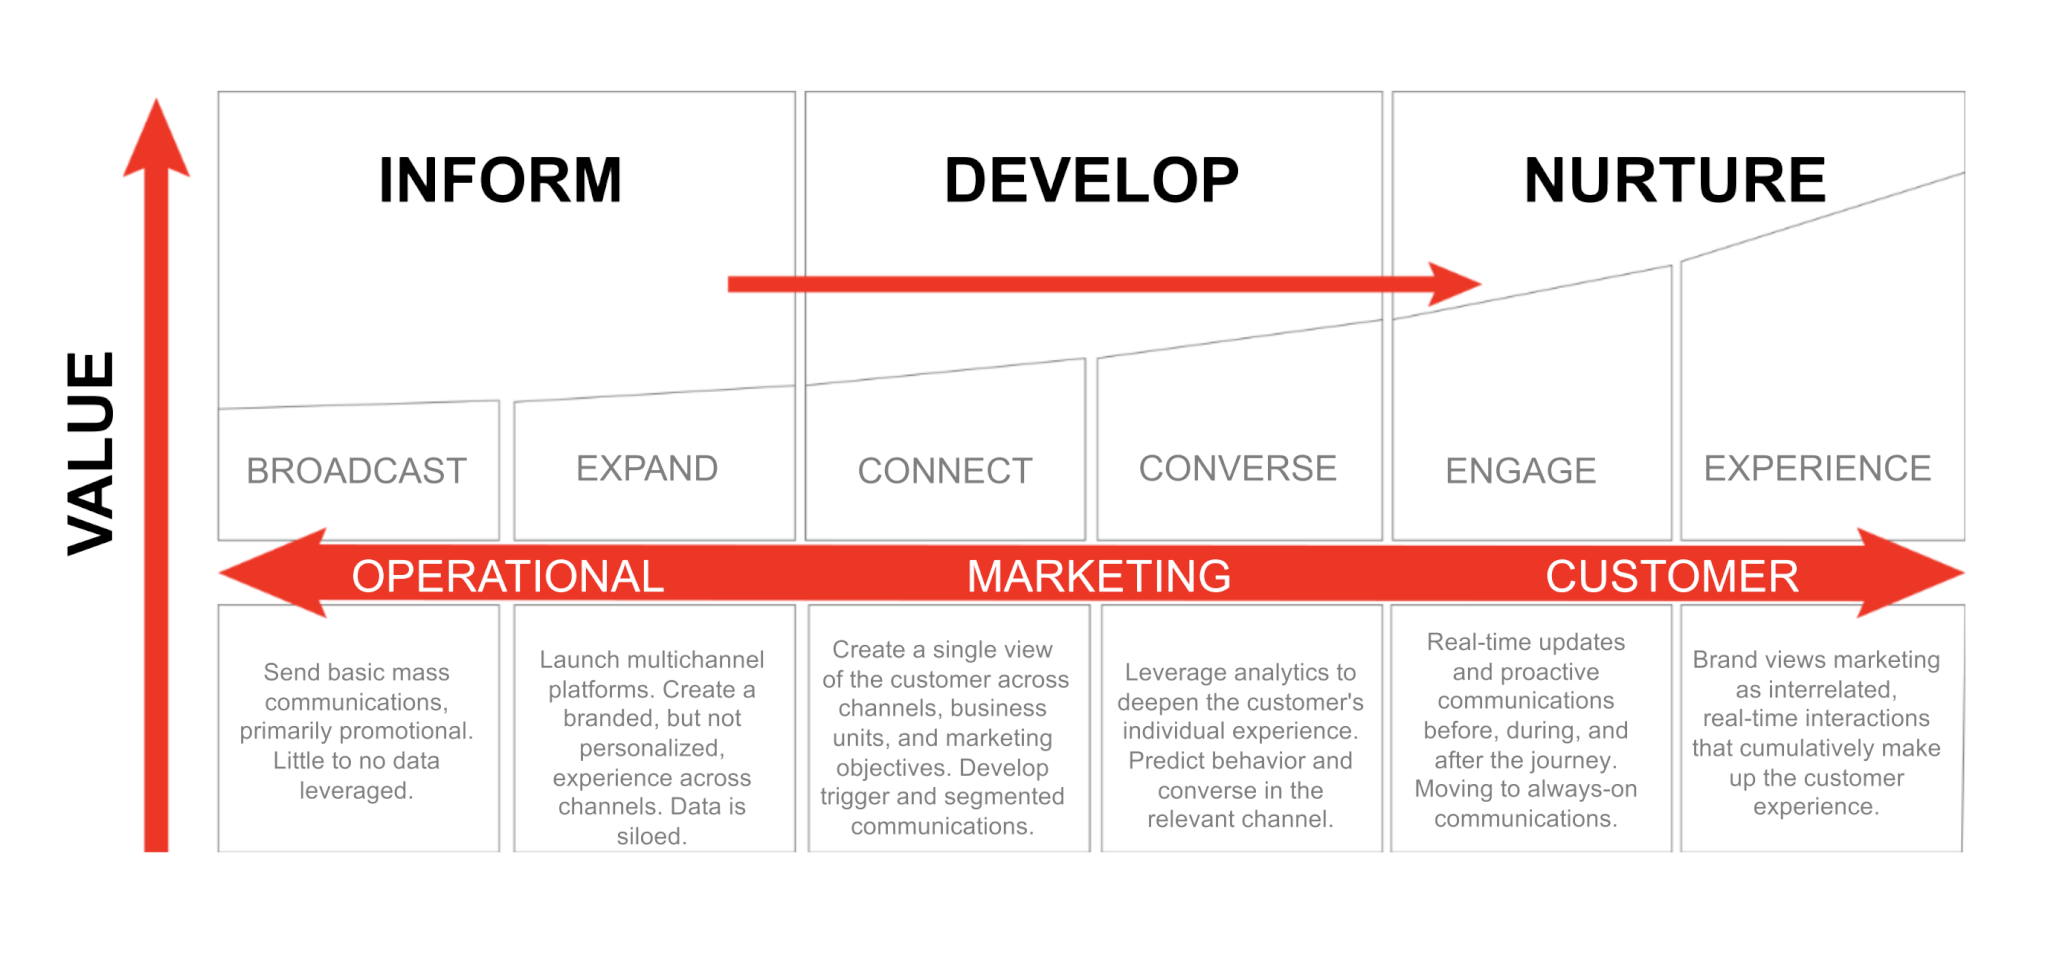 Ansira's marketing maturity continuum